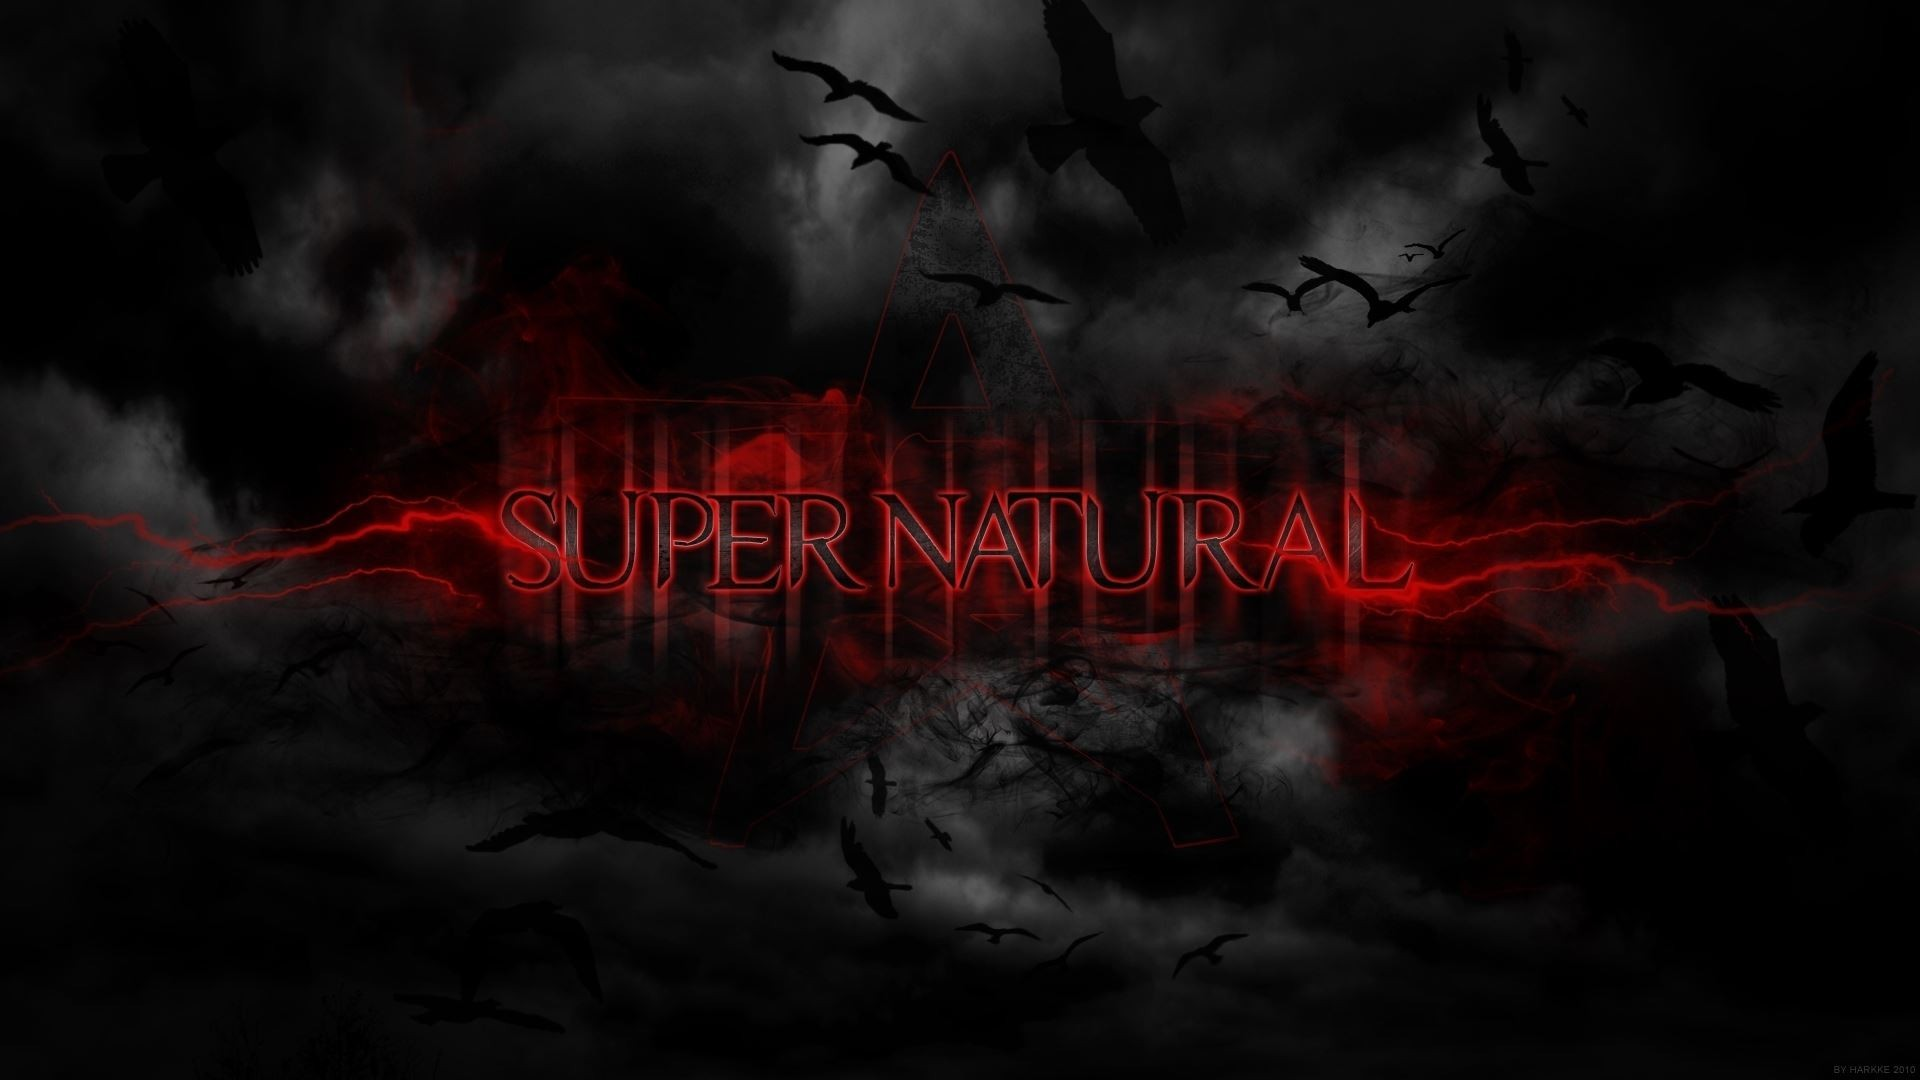 Supernatural Wallpapers, Pictures, Images